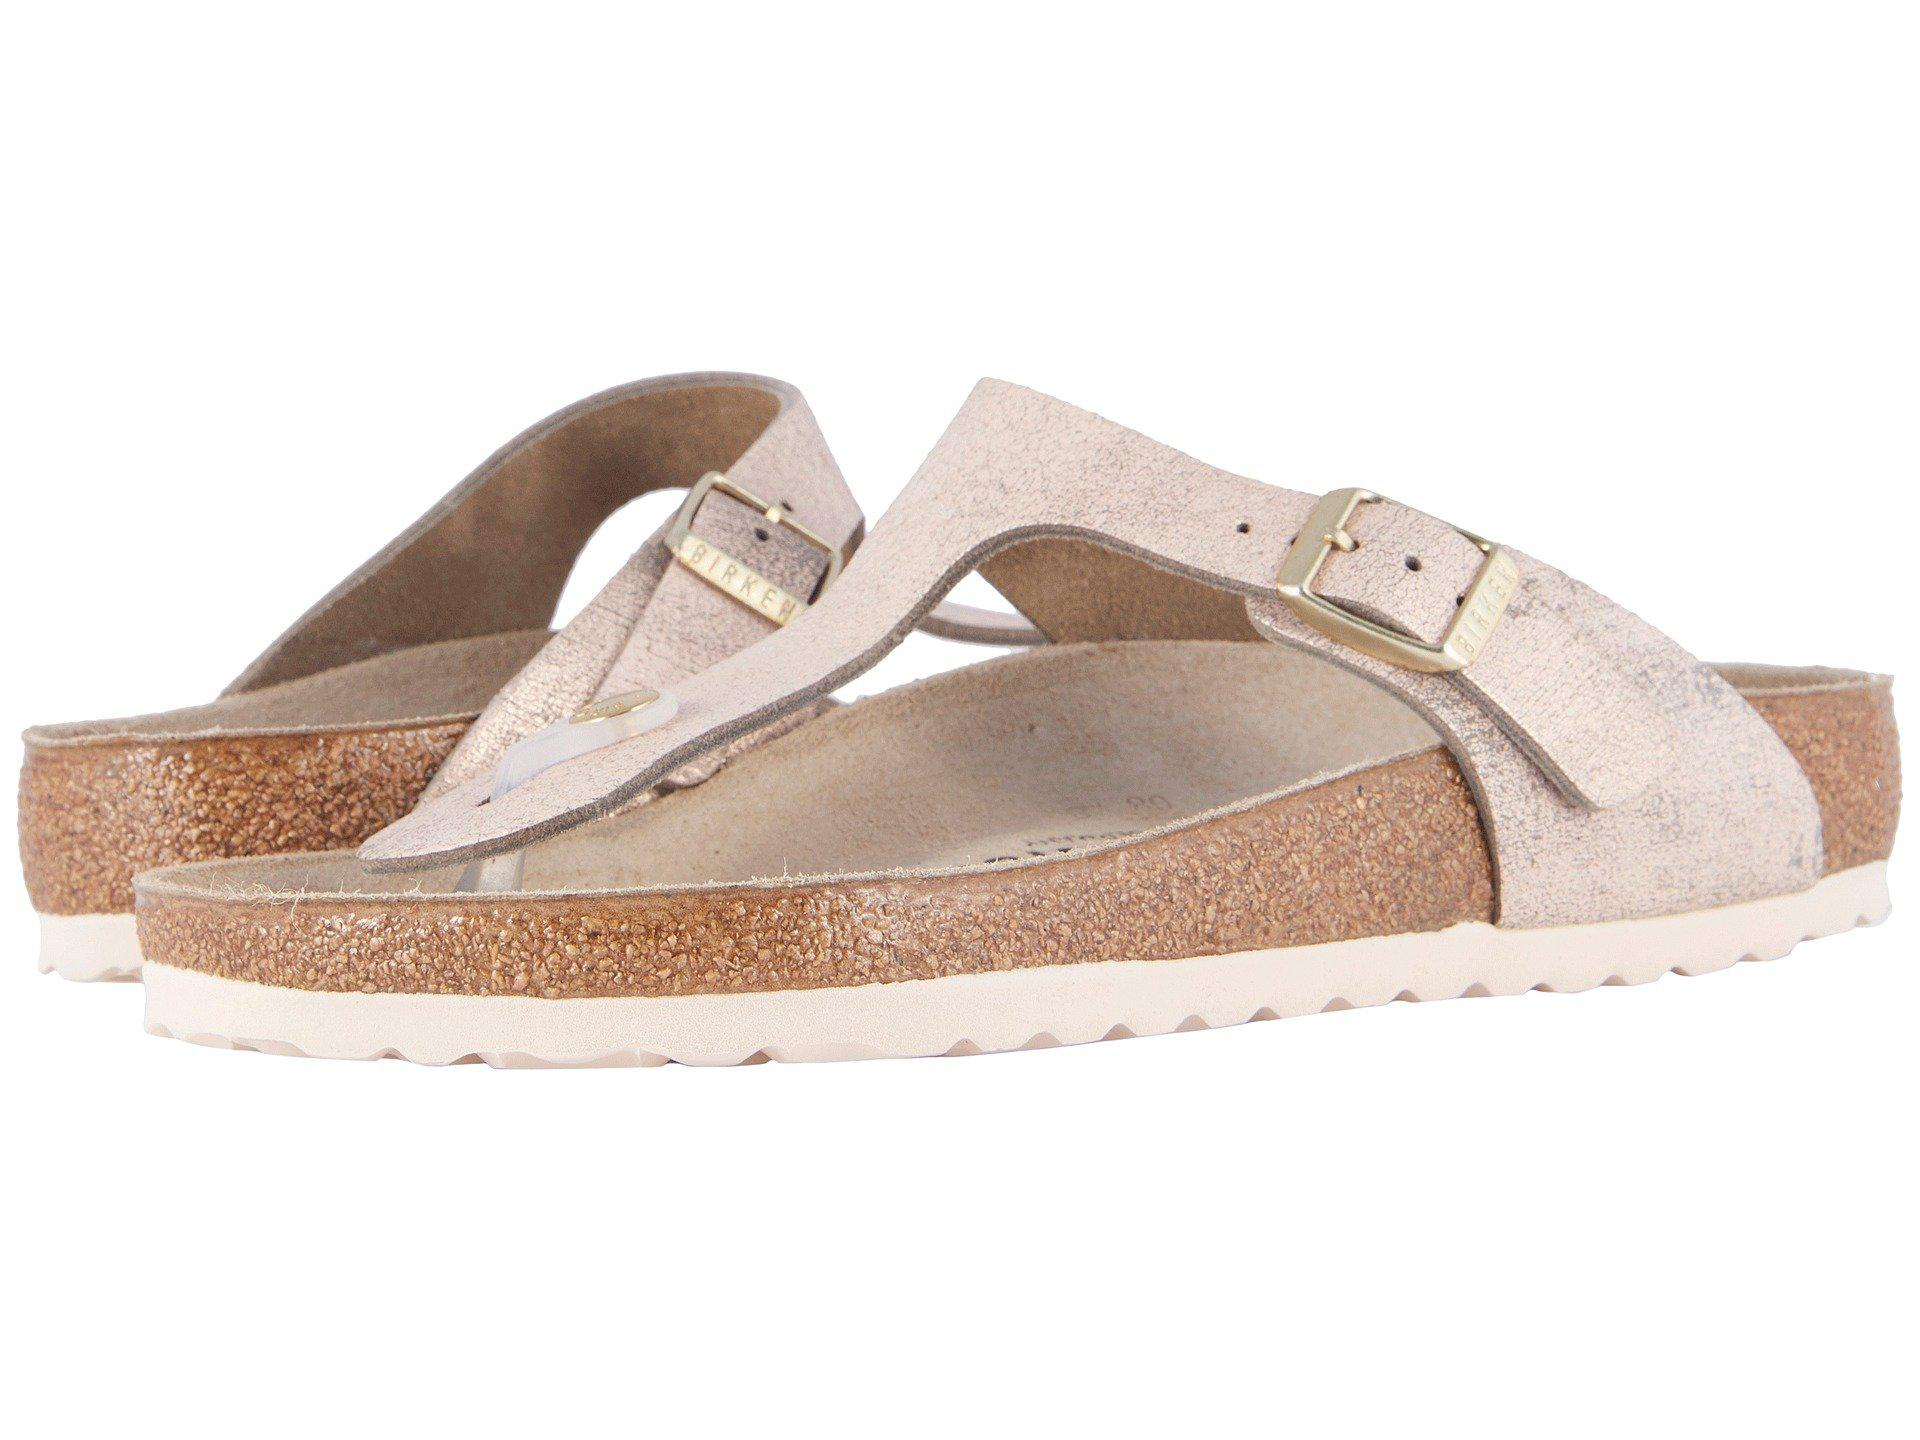 9a21a050034 Lyst - Birkenstock Gizeh (washed Metallic Rose Leather) Women s ...